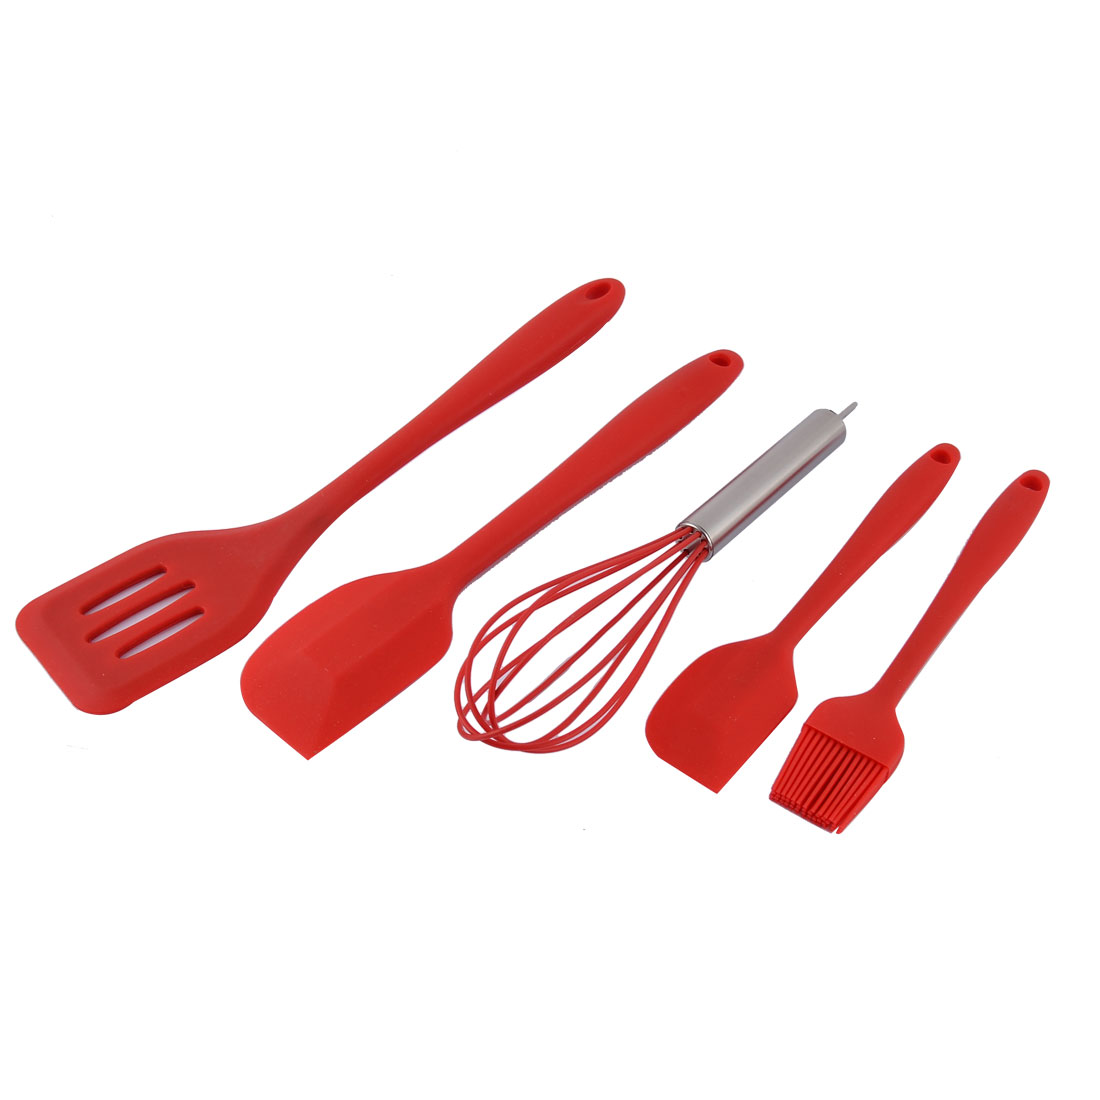 Silicone Heat Resistant Spatula Brush Whisk Baking Tool Utensil Set Red 5 in 1